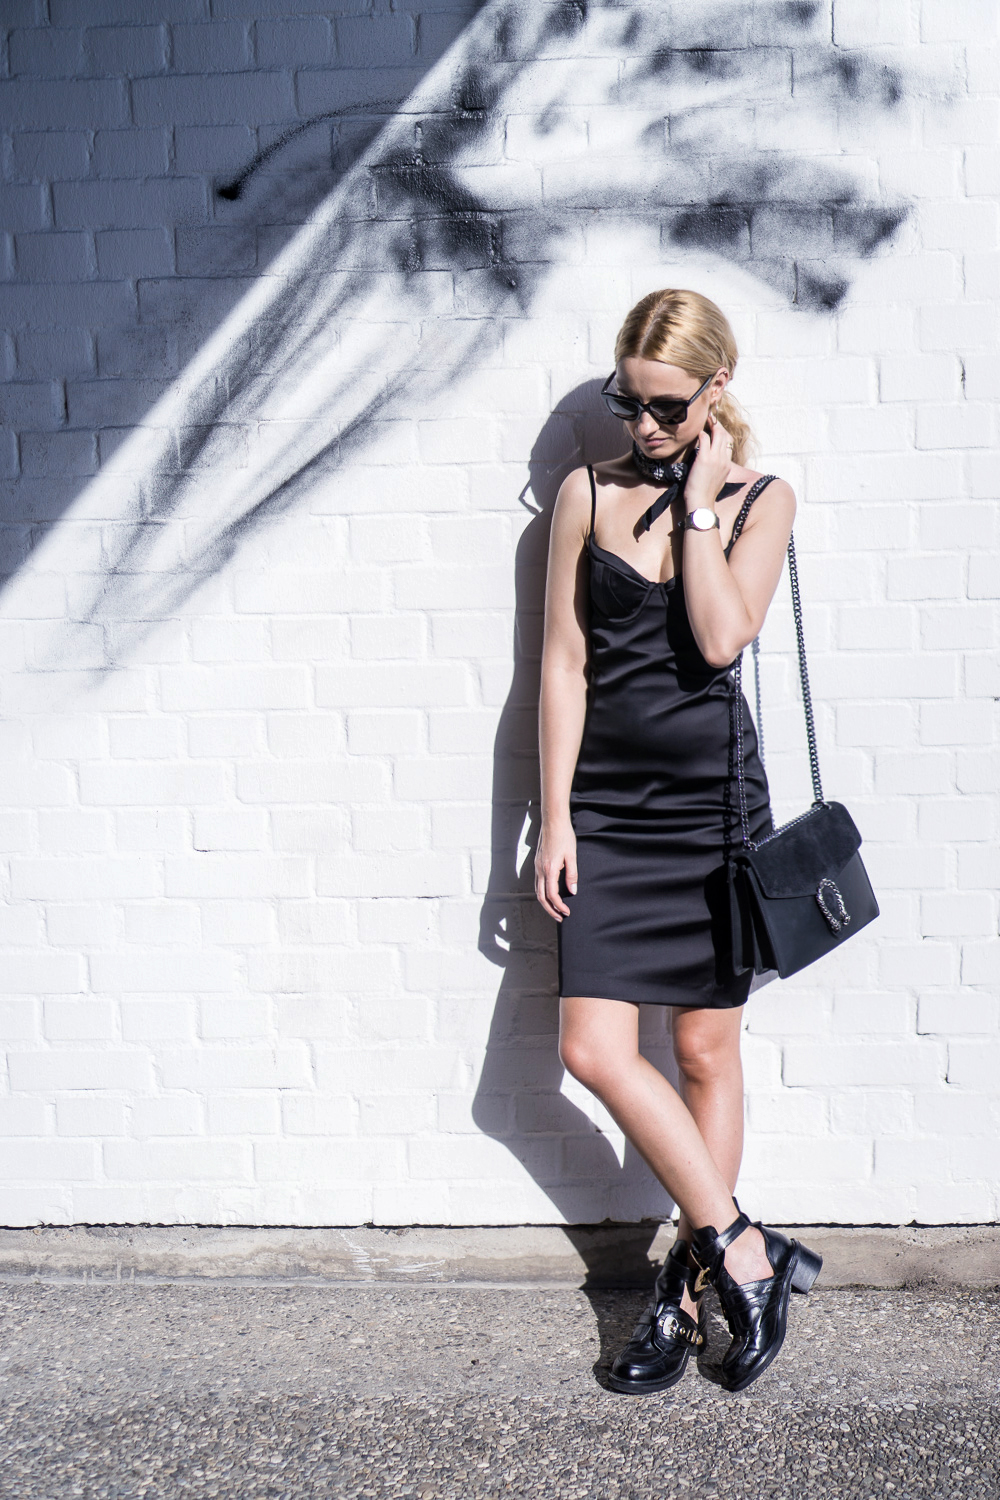 wearing black dress hm balenciaga boots blonde bloger street style ootd fashion outfit tumblr girl